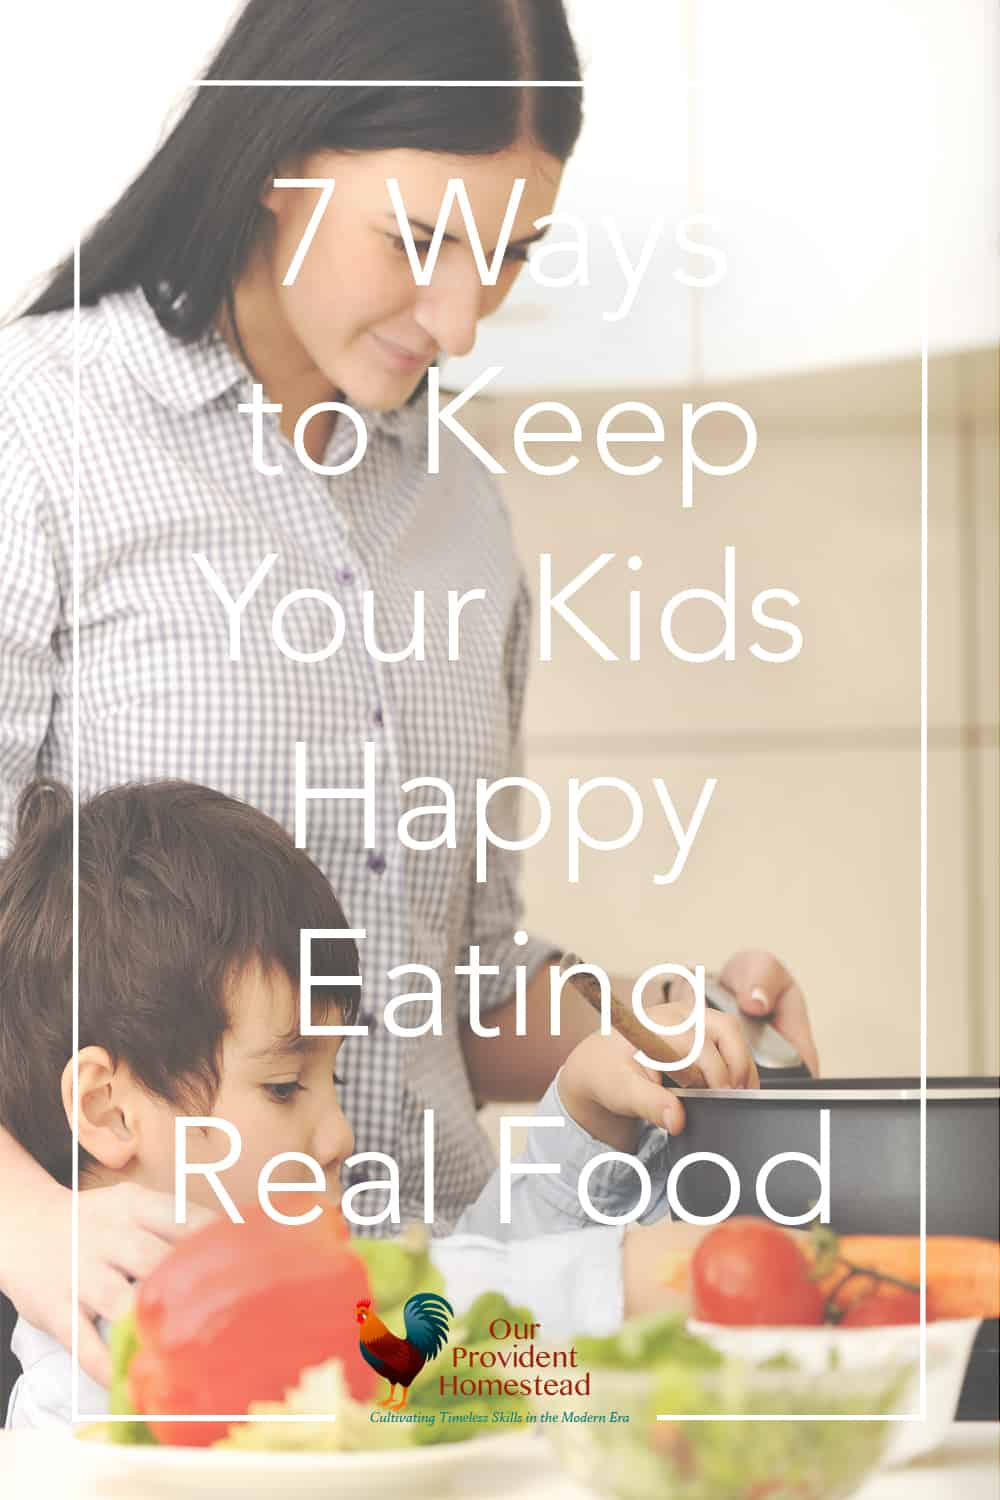 Do your kids like to eat healthy? Get our 7 ways to keep kids happy eating real food and maybe your kids will choose healthy food too. #realfood #health #healthyfood #healthyfamily